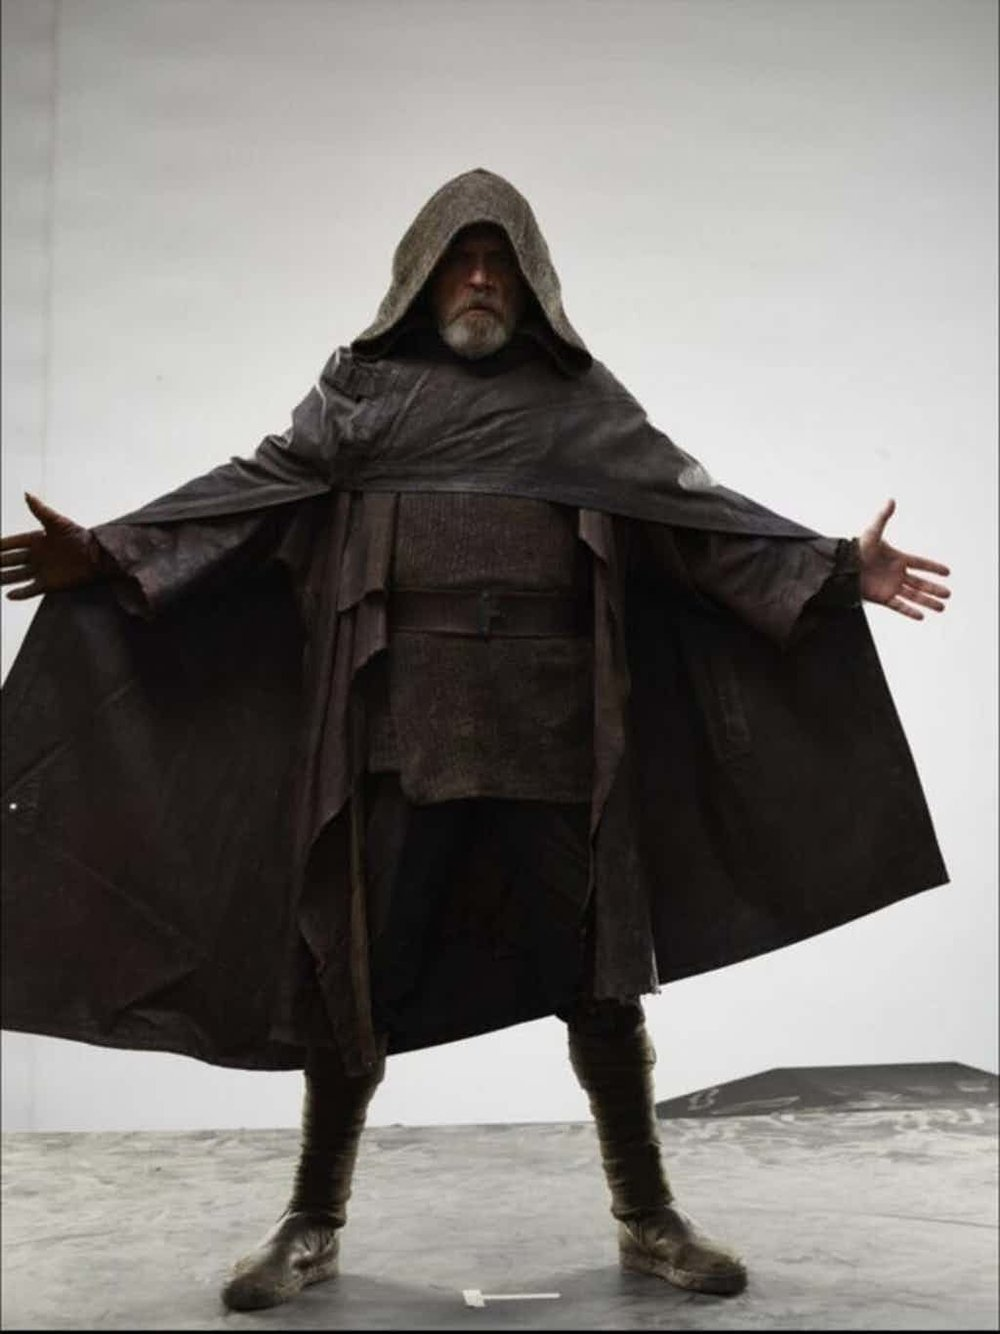 Star-Wars-The-Last-Jedi-Mark-Hammil-as-Luke-Skywalker-in-Brown-Robes-and-Hood.jpg